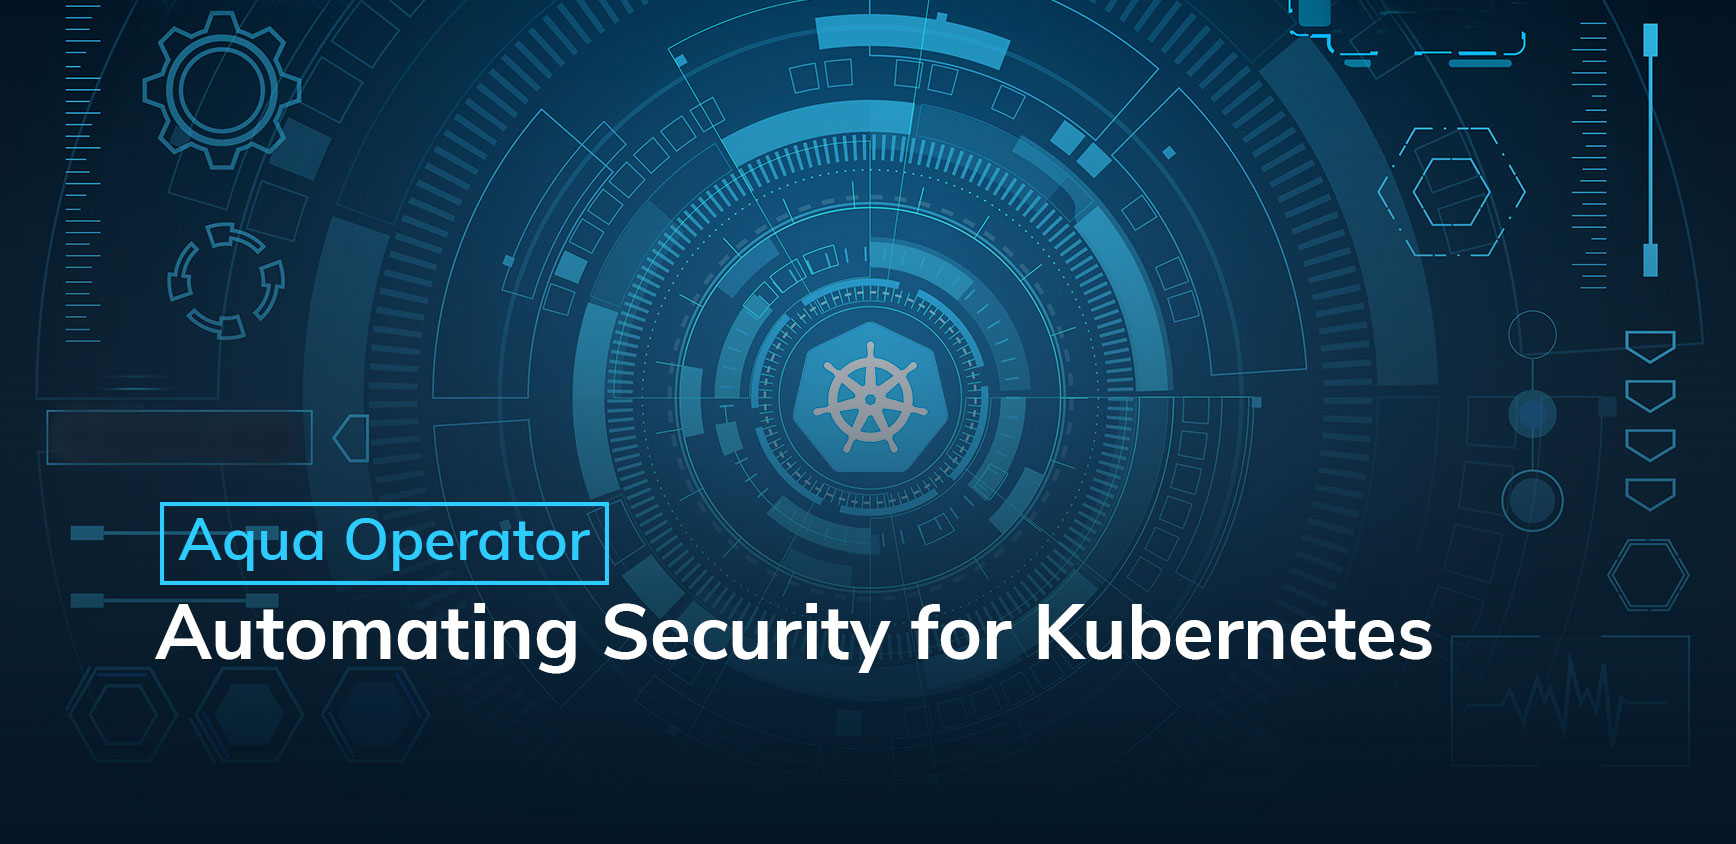 Aqua Operator: Automating Security for Kubernetes